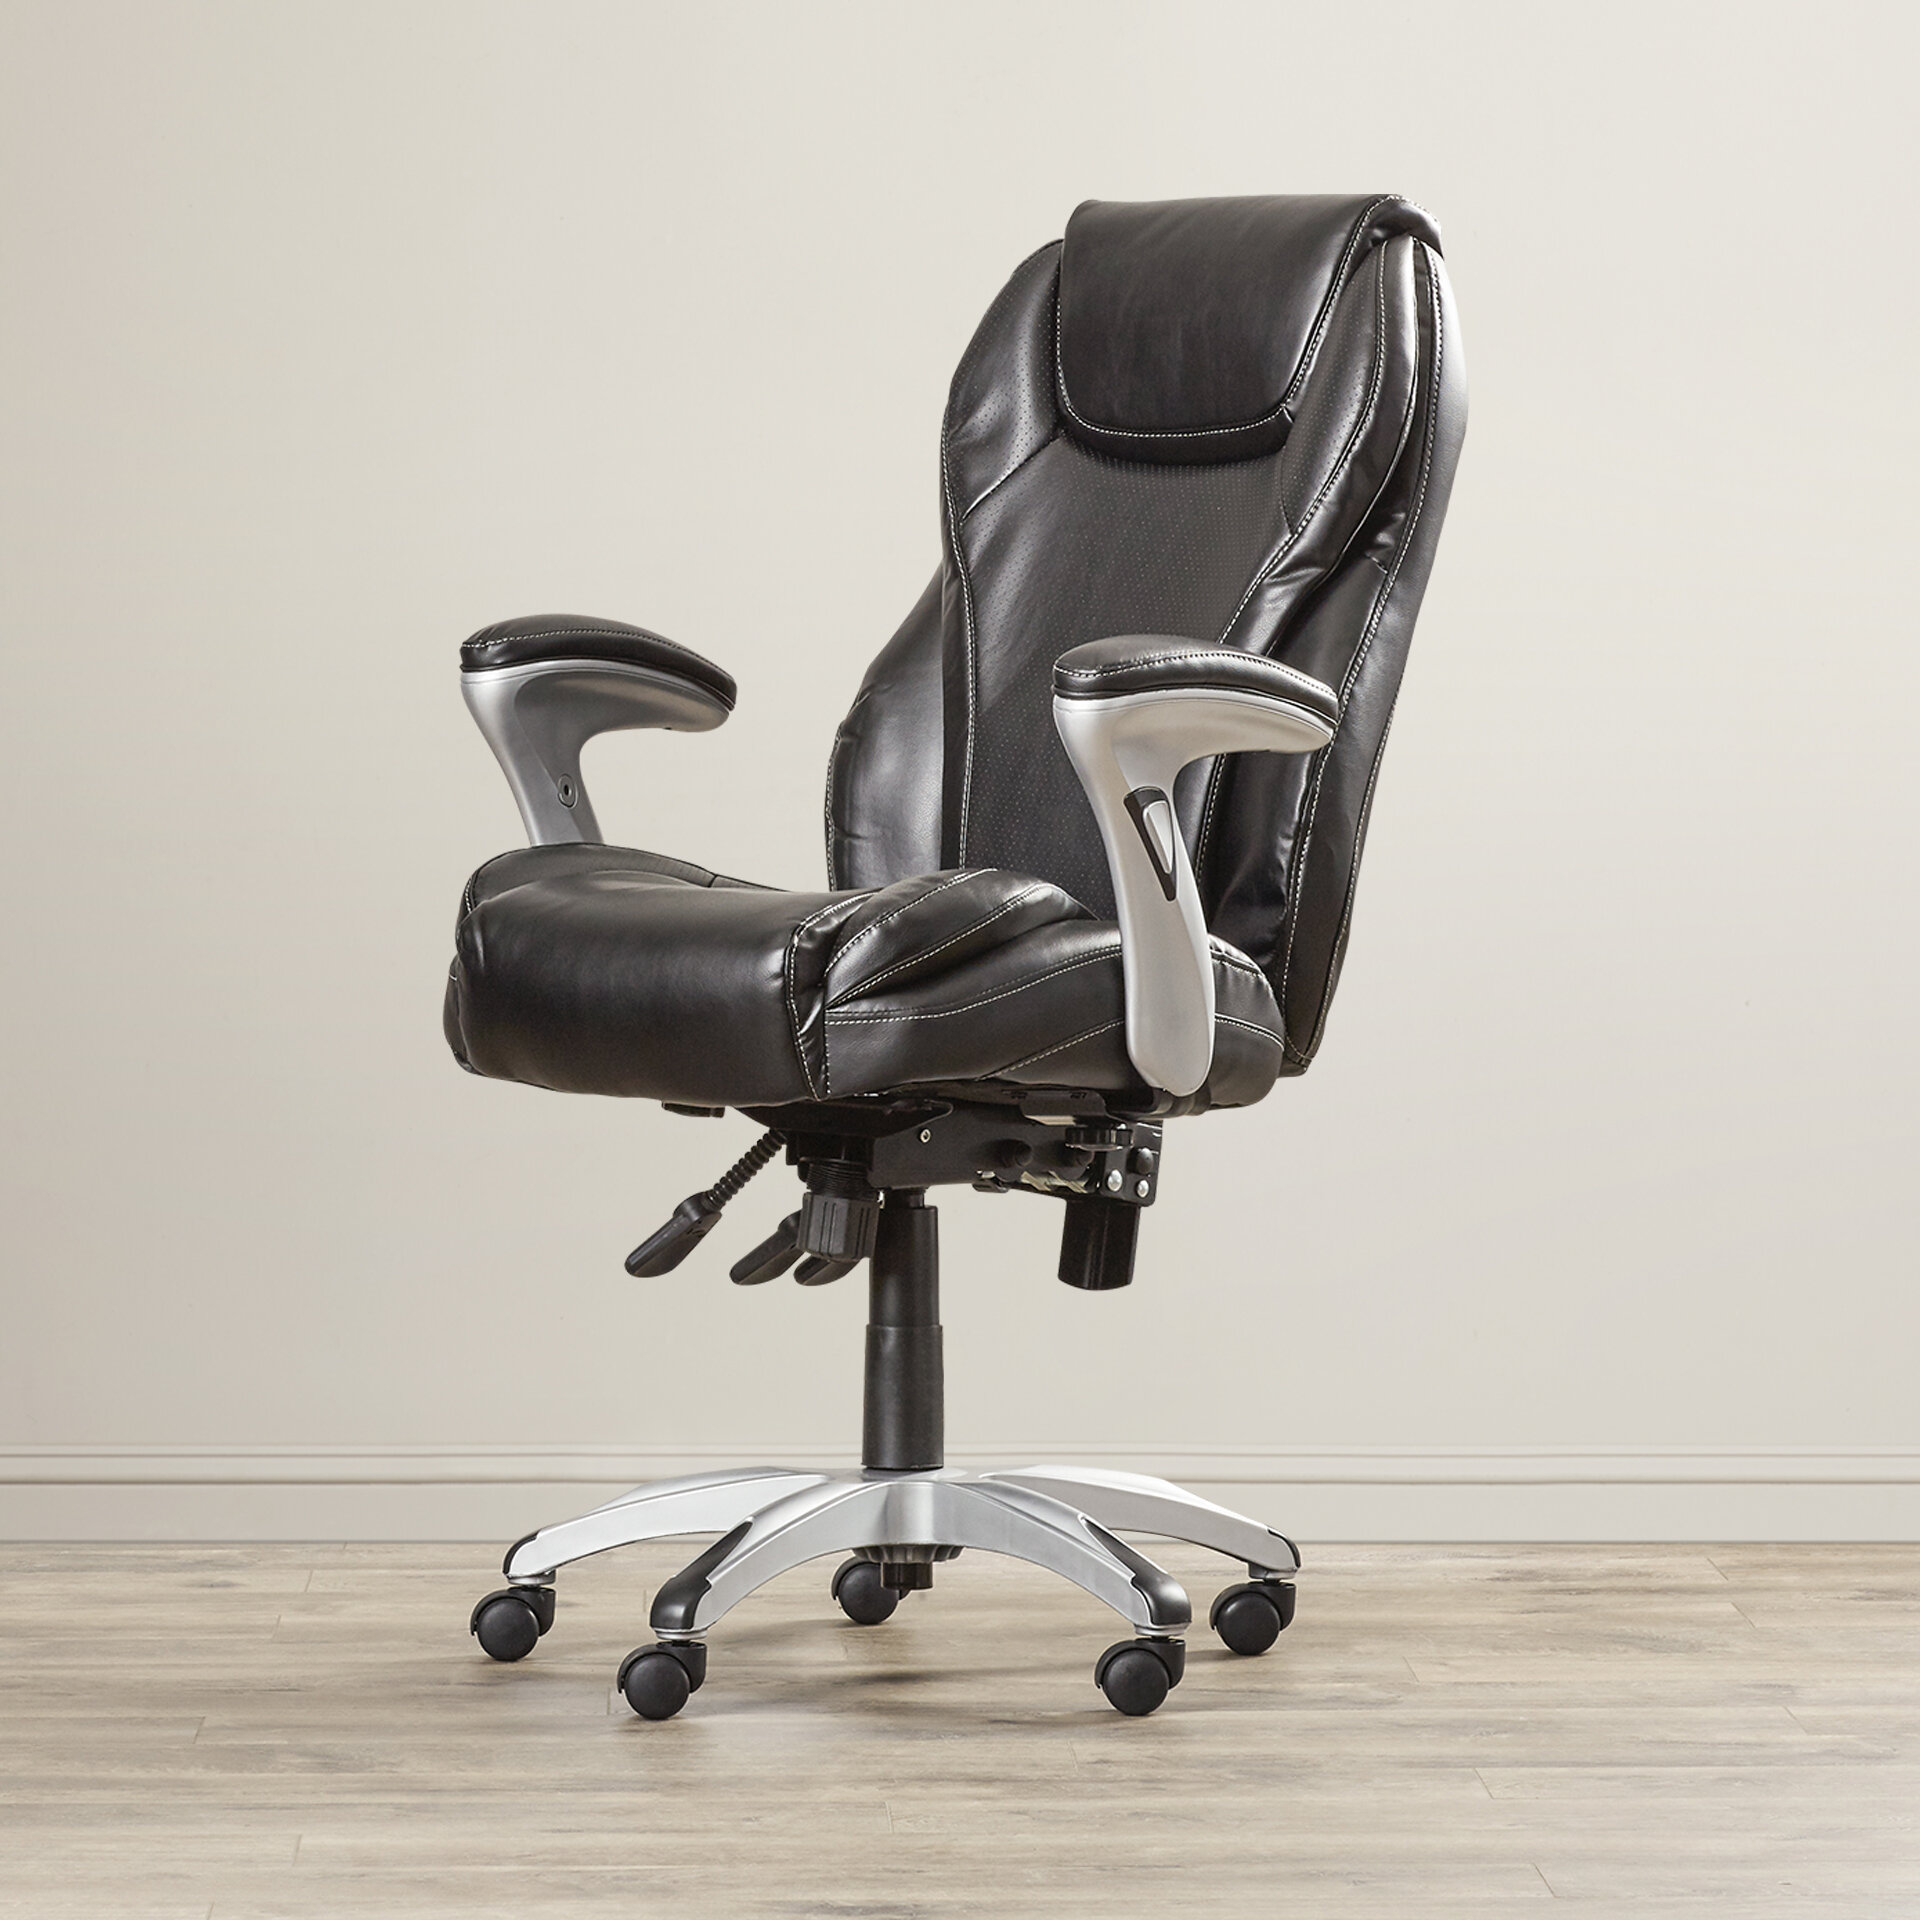 Serta At Home Ergo Ergonomic Executive Chair Reviews Wayfair